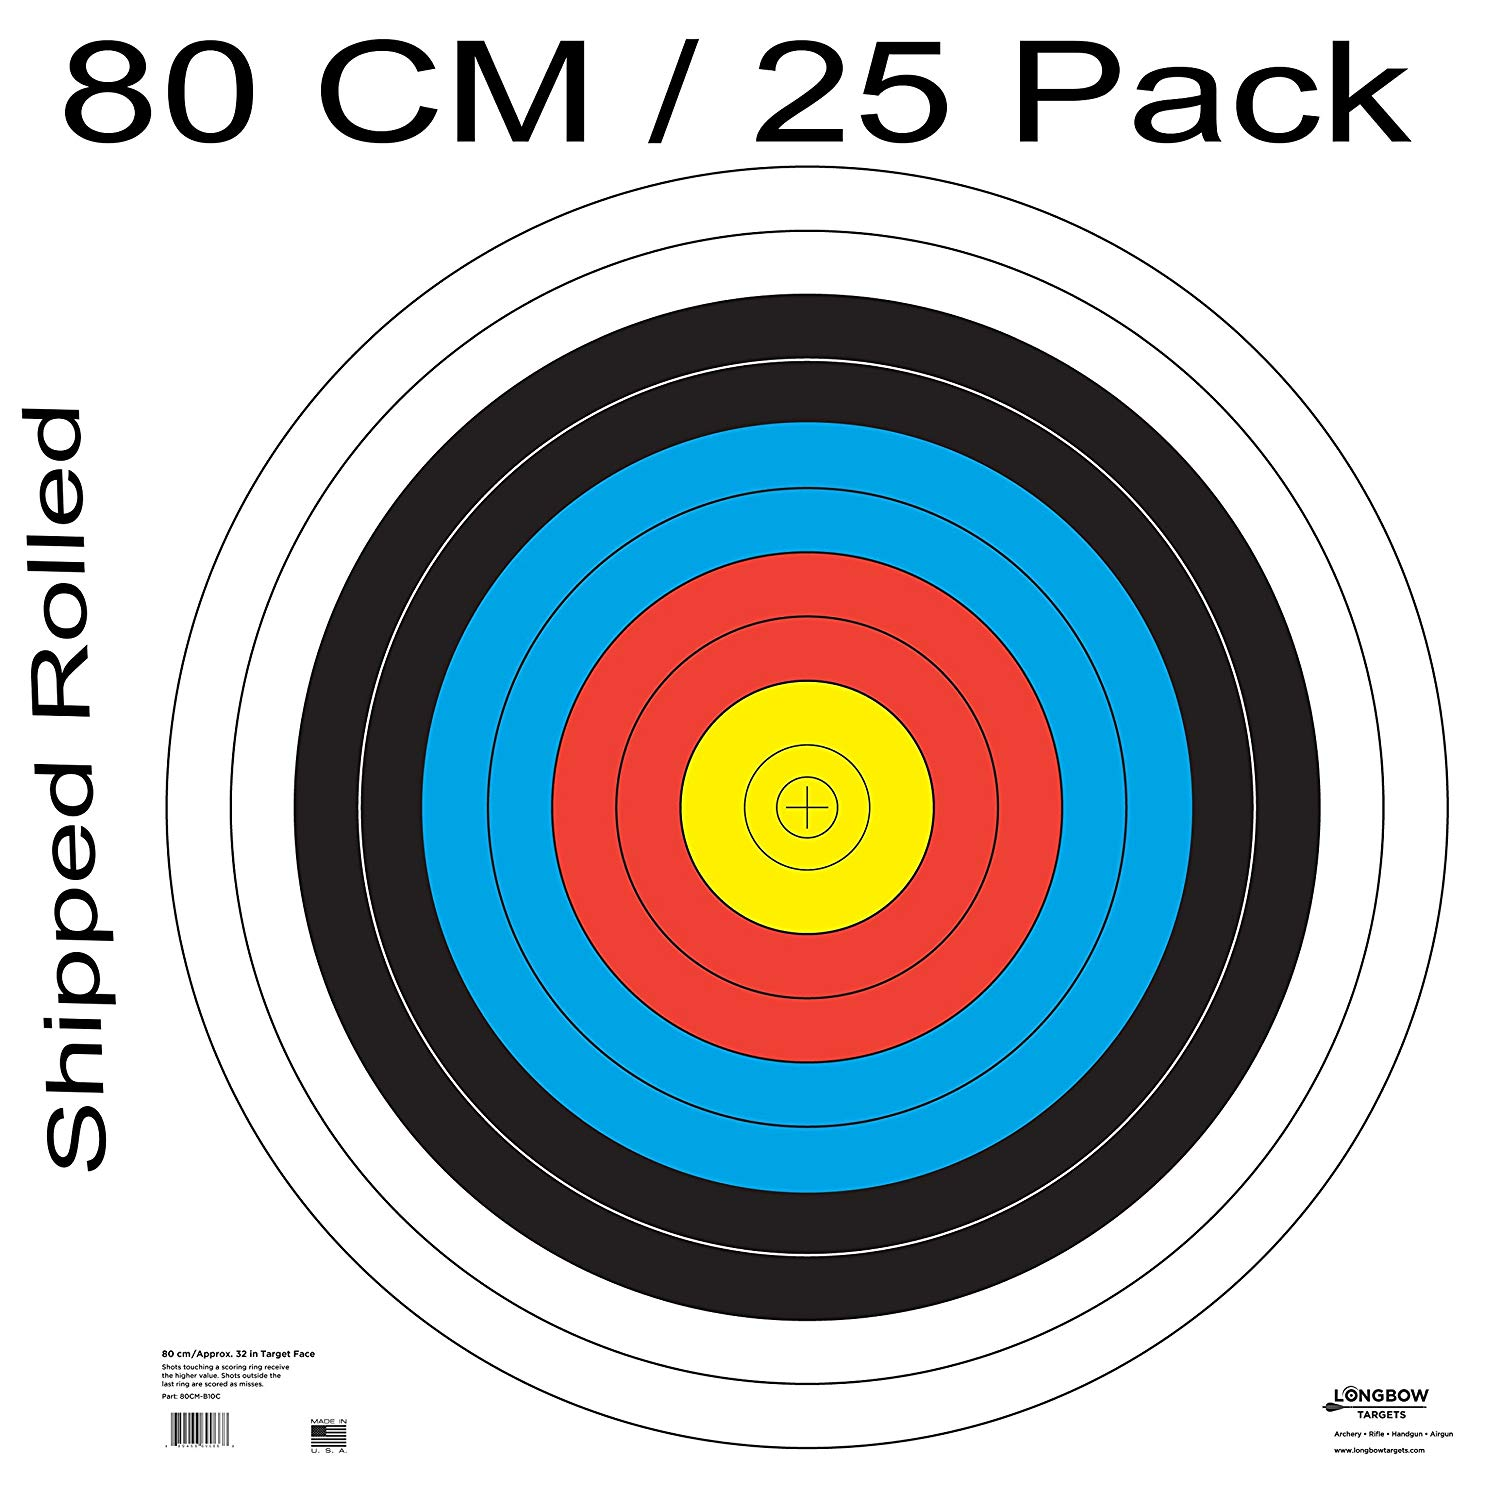 Archery 40cm and 80cm Longbow Targets by Longbow